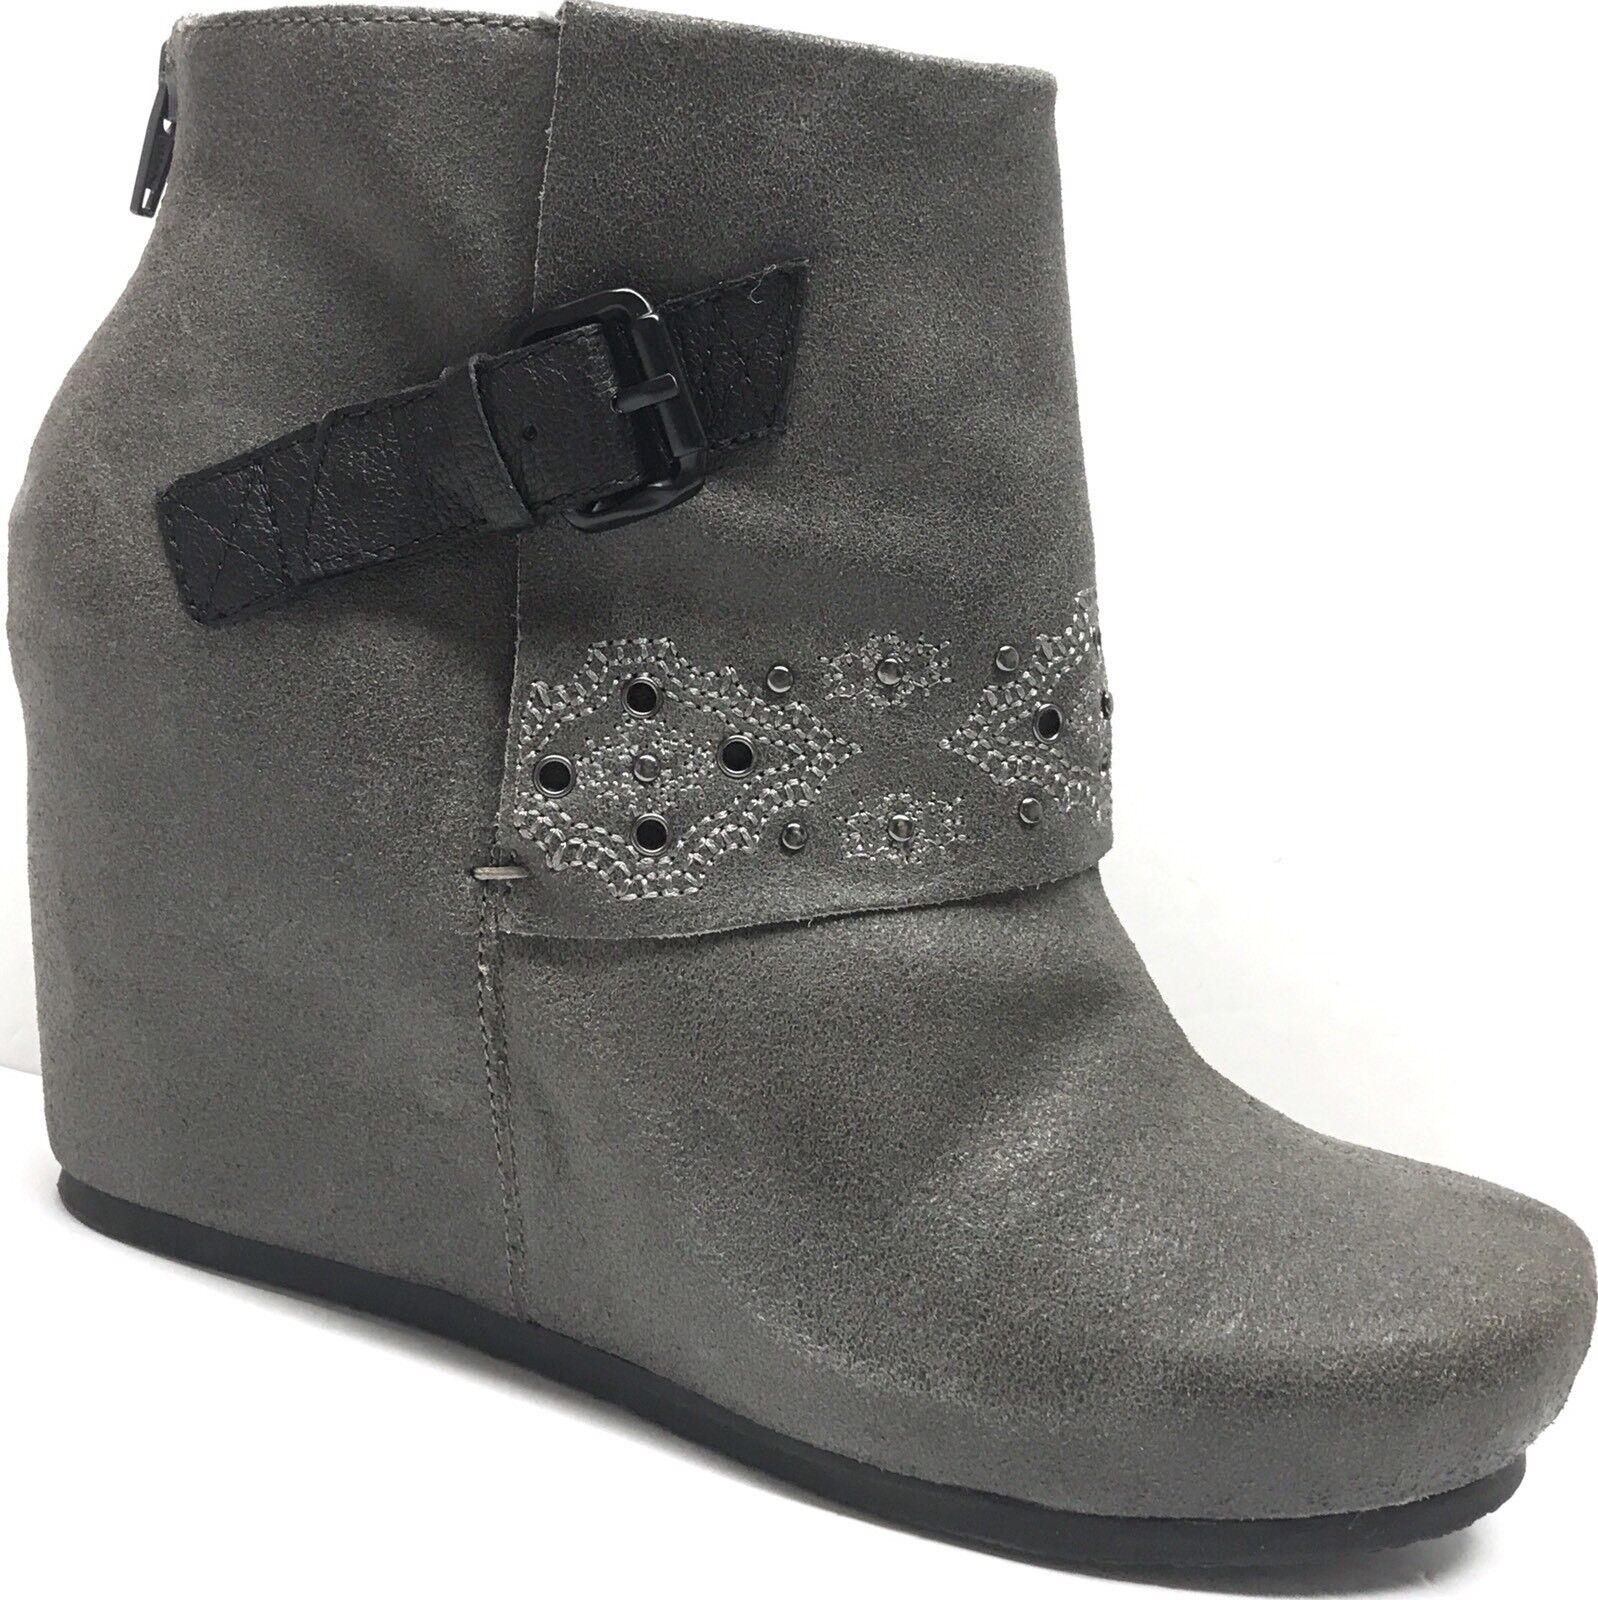 OTBT Robertson Leather Stud Zip Covered Wedge Heel Ankle Bootie shoes Boots 10